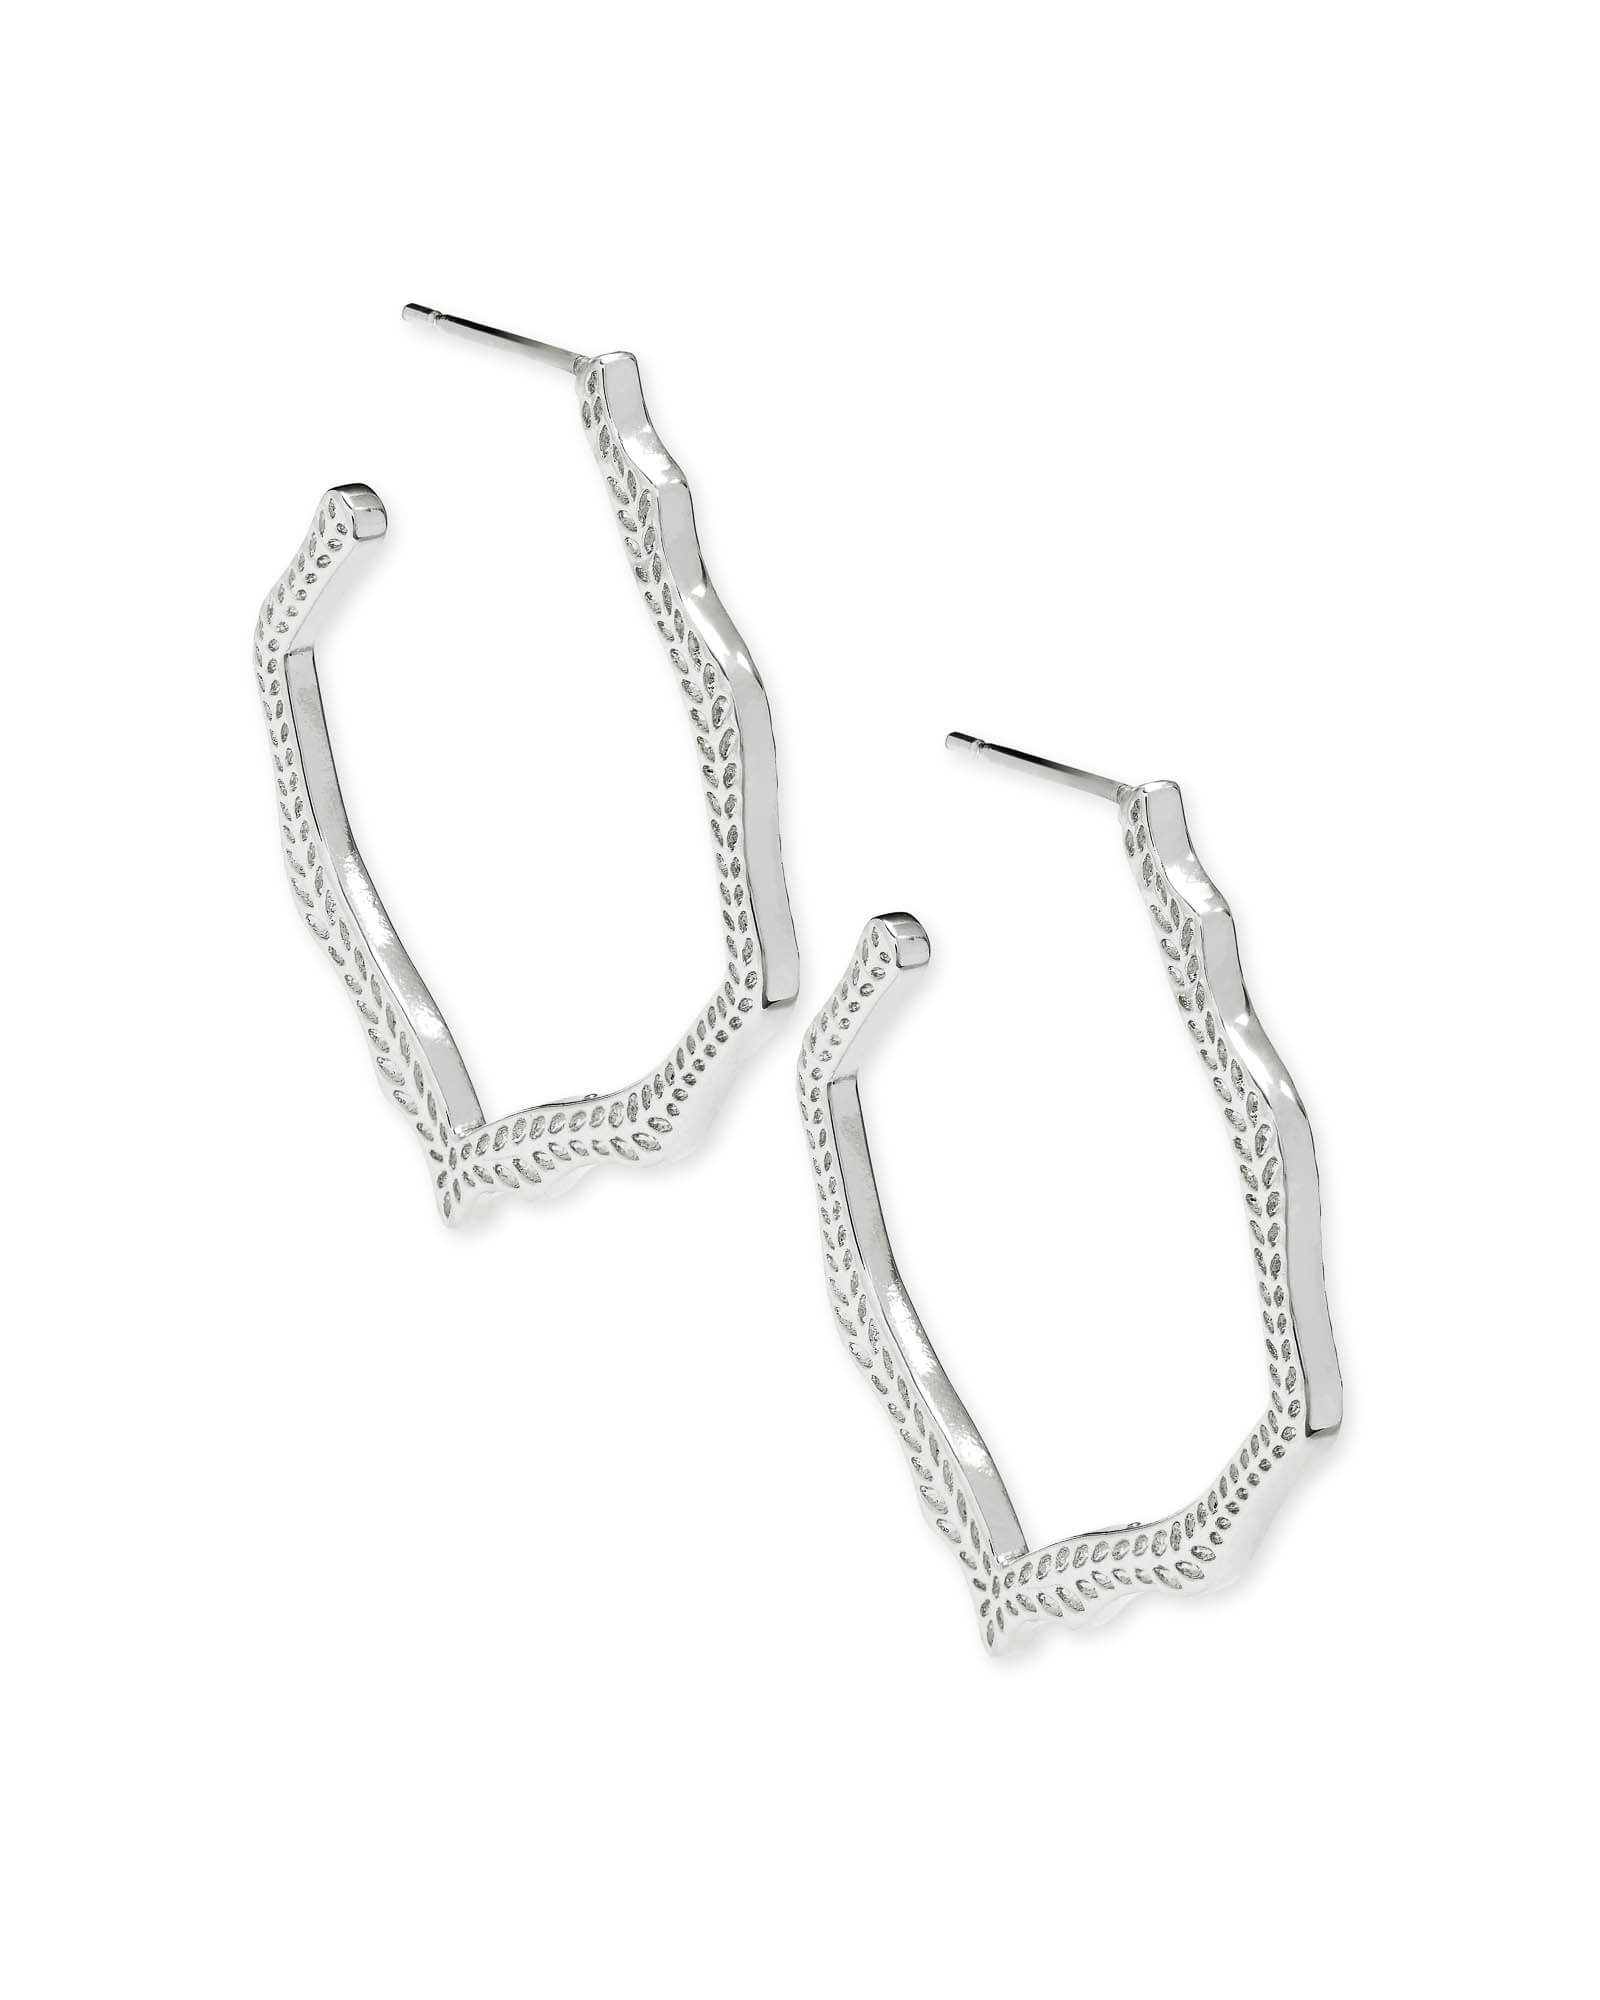 Kendra Scott Miku Earrings in Silver